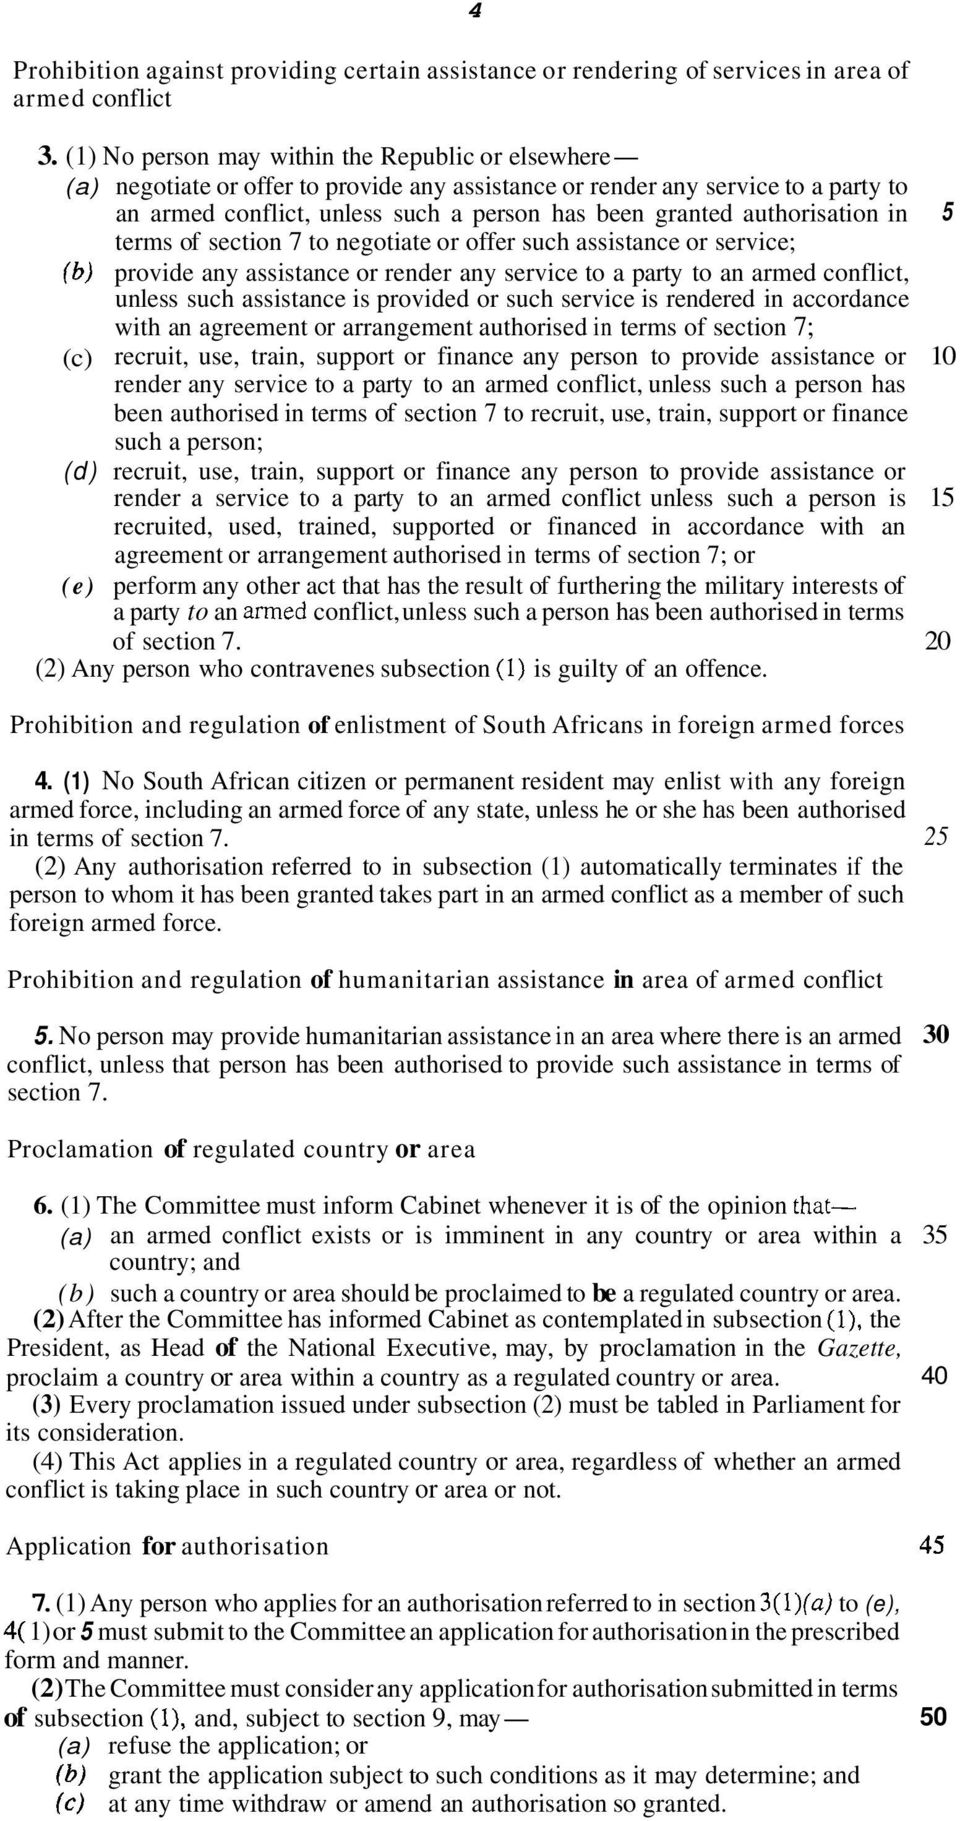 authorisation in 5 terms of section 7 to negotiate or offer such assistance or service; (b) provide any assistance or render any service to a party to an armed conflict, unless such assistance is